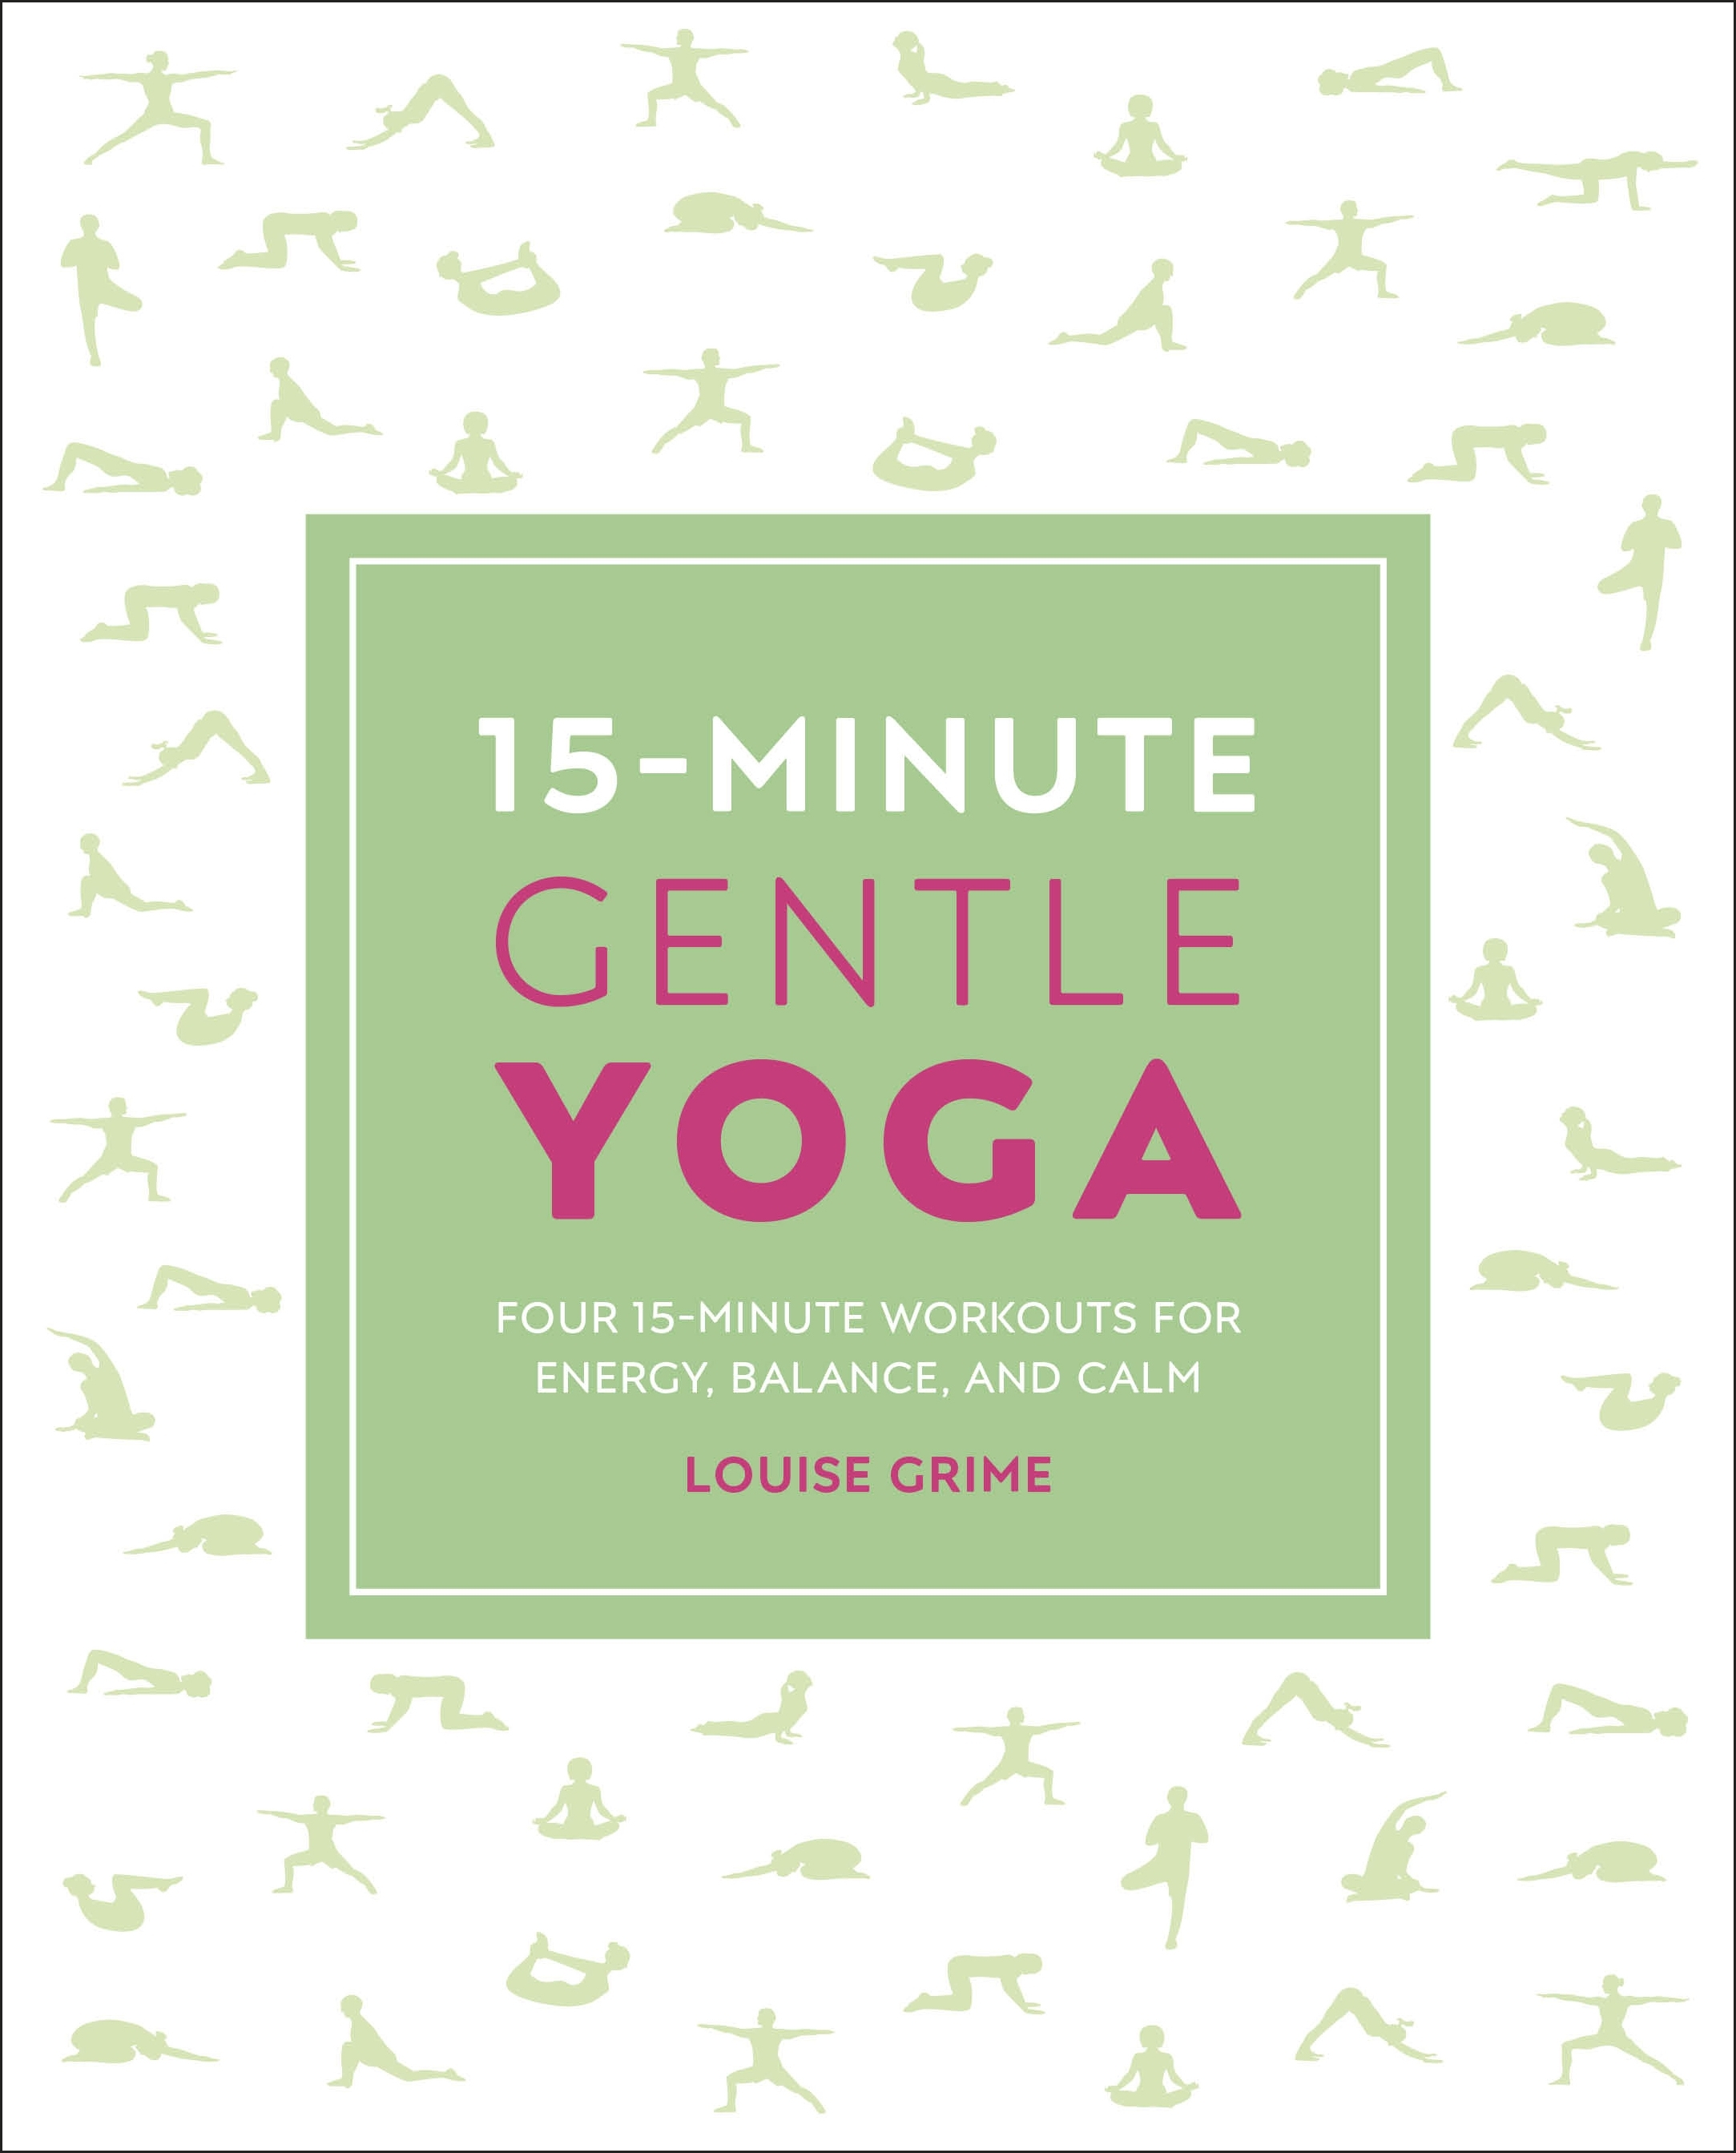 15-Minute Gentle Yoga Four 15-Minute Workouts for Energy, Balance, and Calm